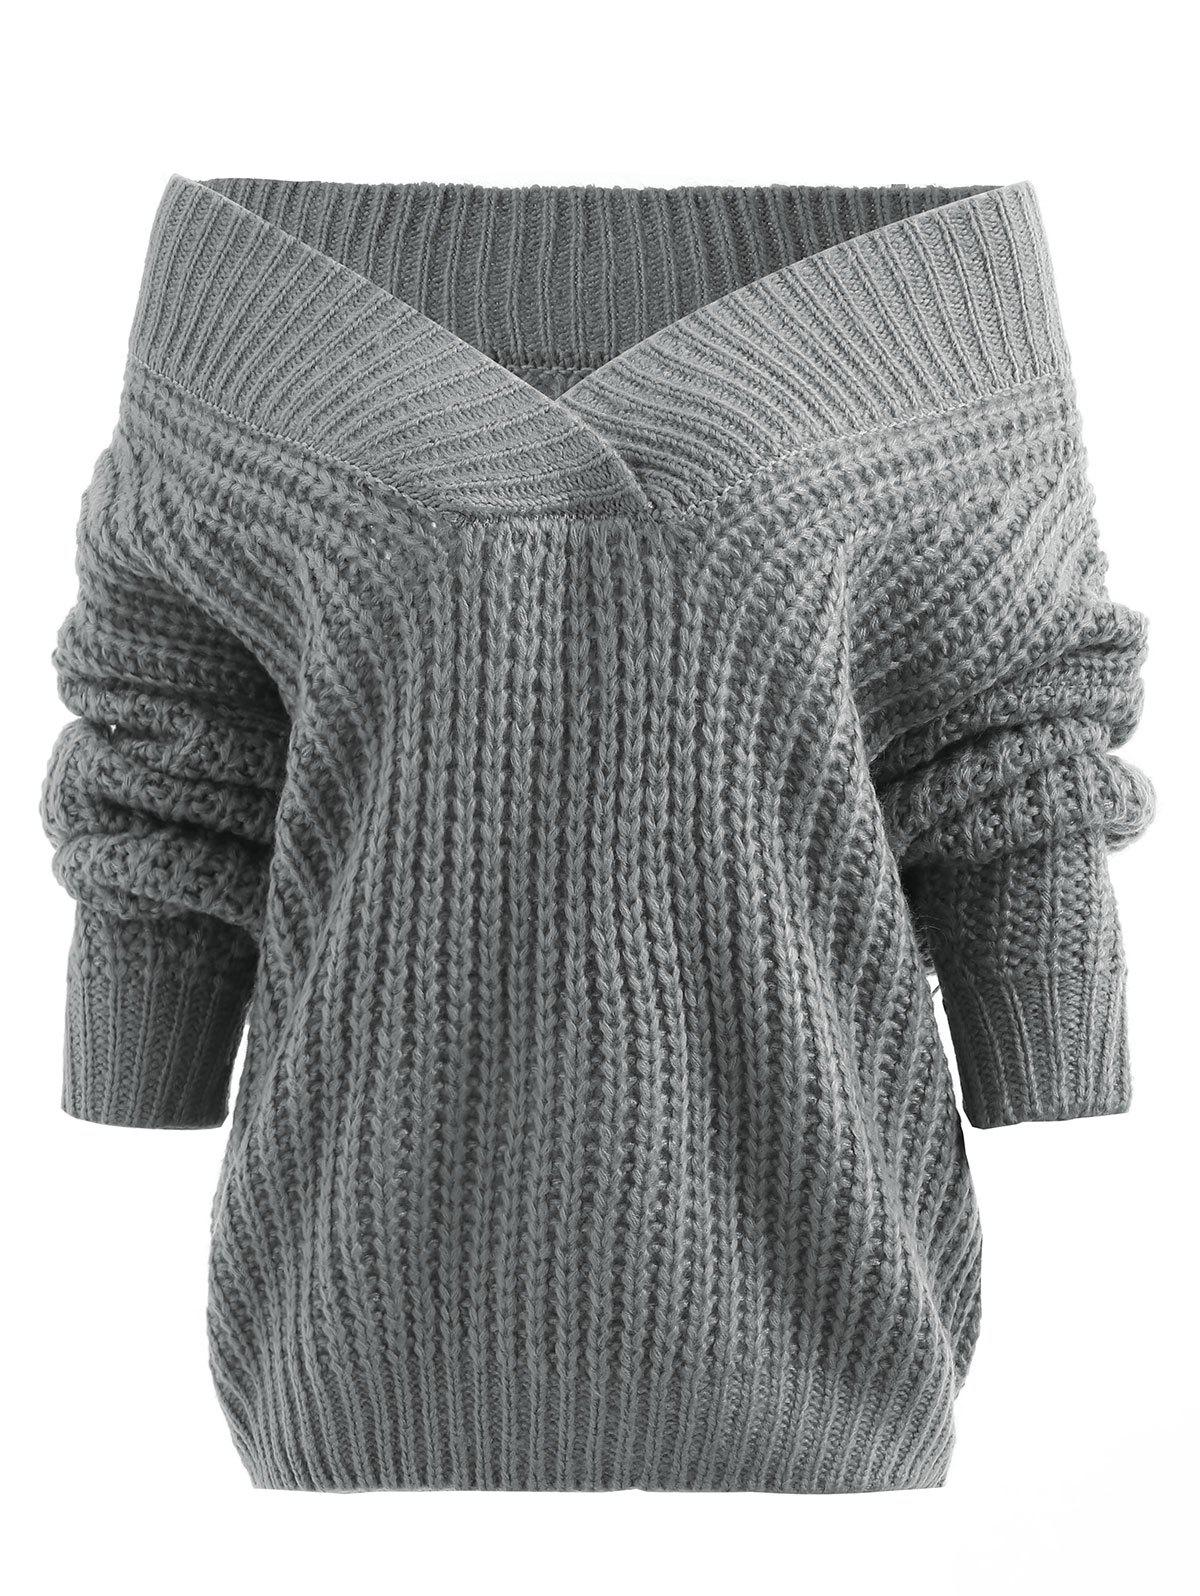 Off Shoulder Chunky Tunic Sweater - GRAY ONE SIZE